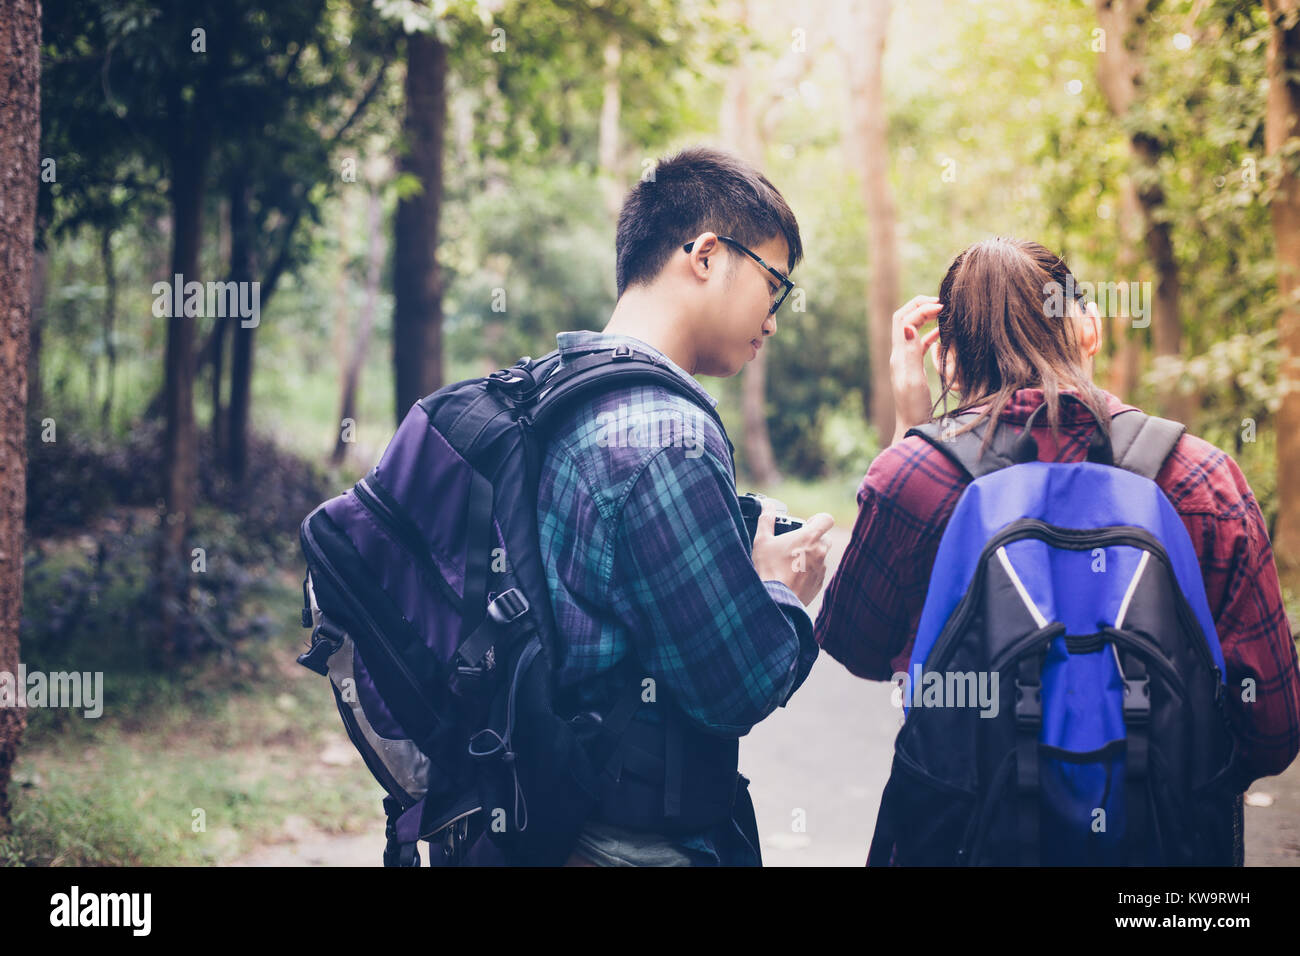 Asian Group of young people Hiking with friends backpacks walking together and looking map and taking photo camera - Stock Image